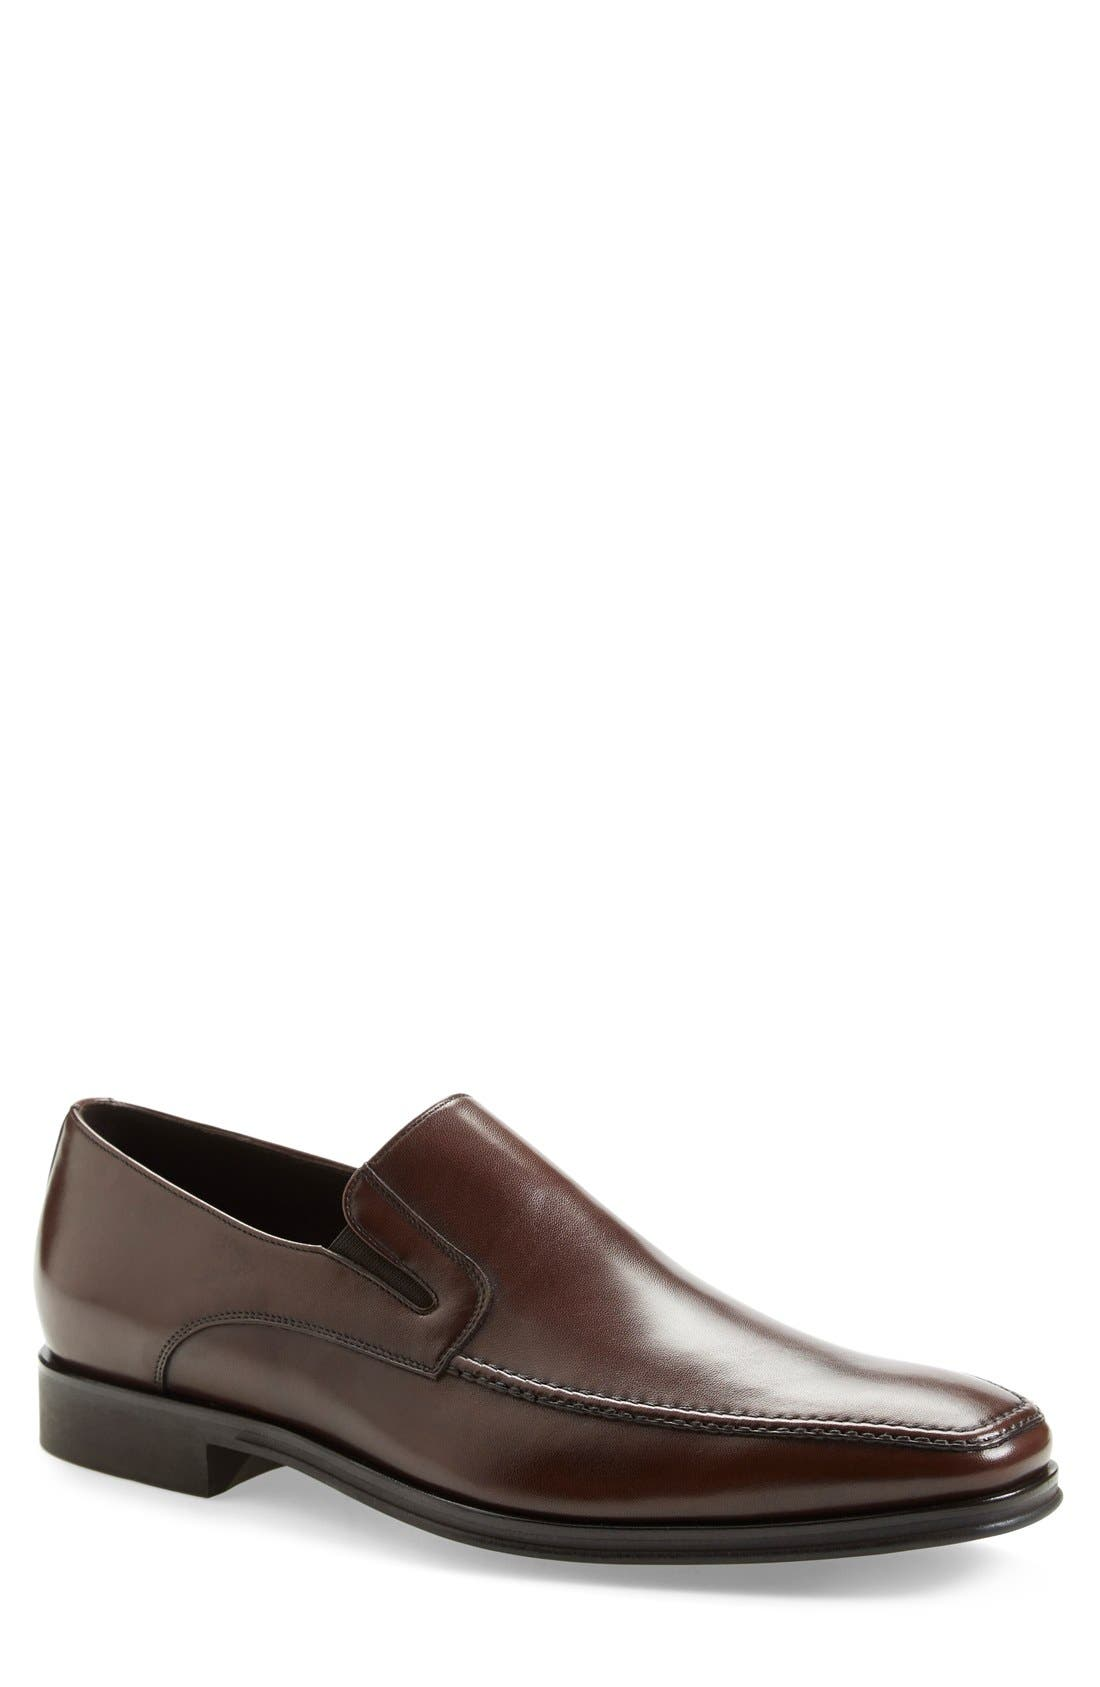 Lucca Nappa Leather Loafer,                             Main thumbnail 1, color,                             BROWN